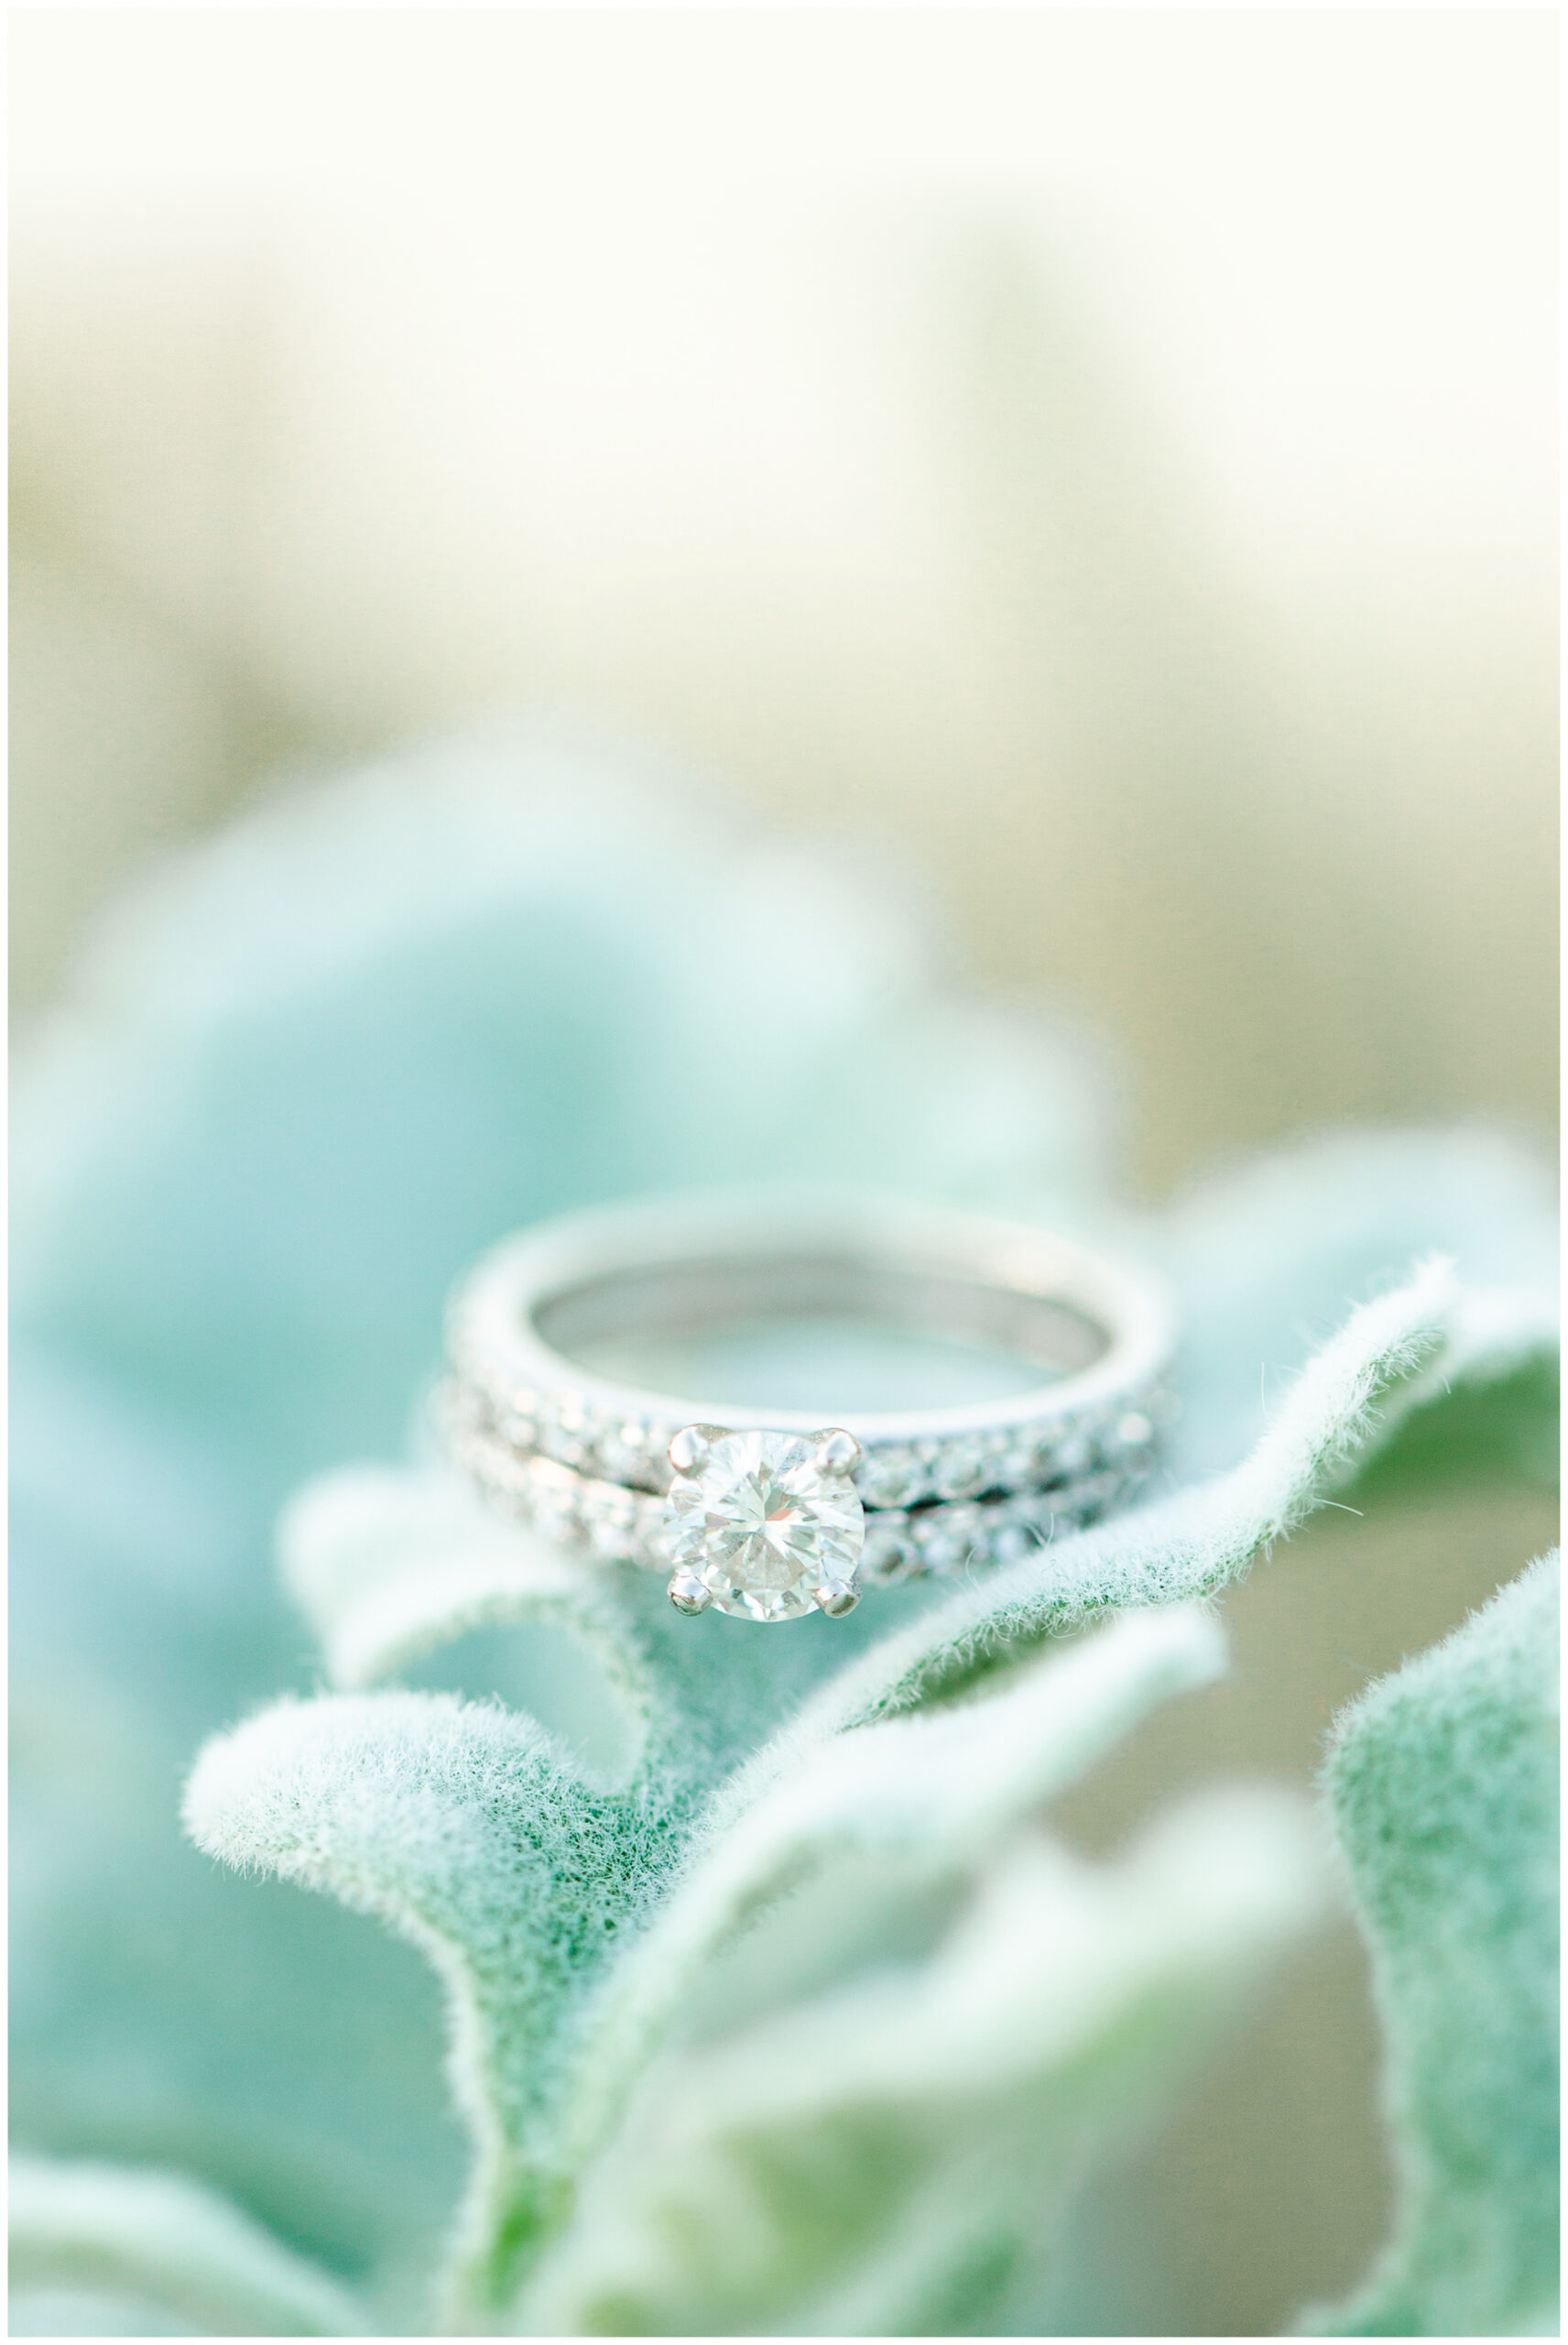 Wedding ring detail on bouquet greenery